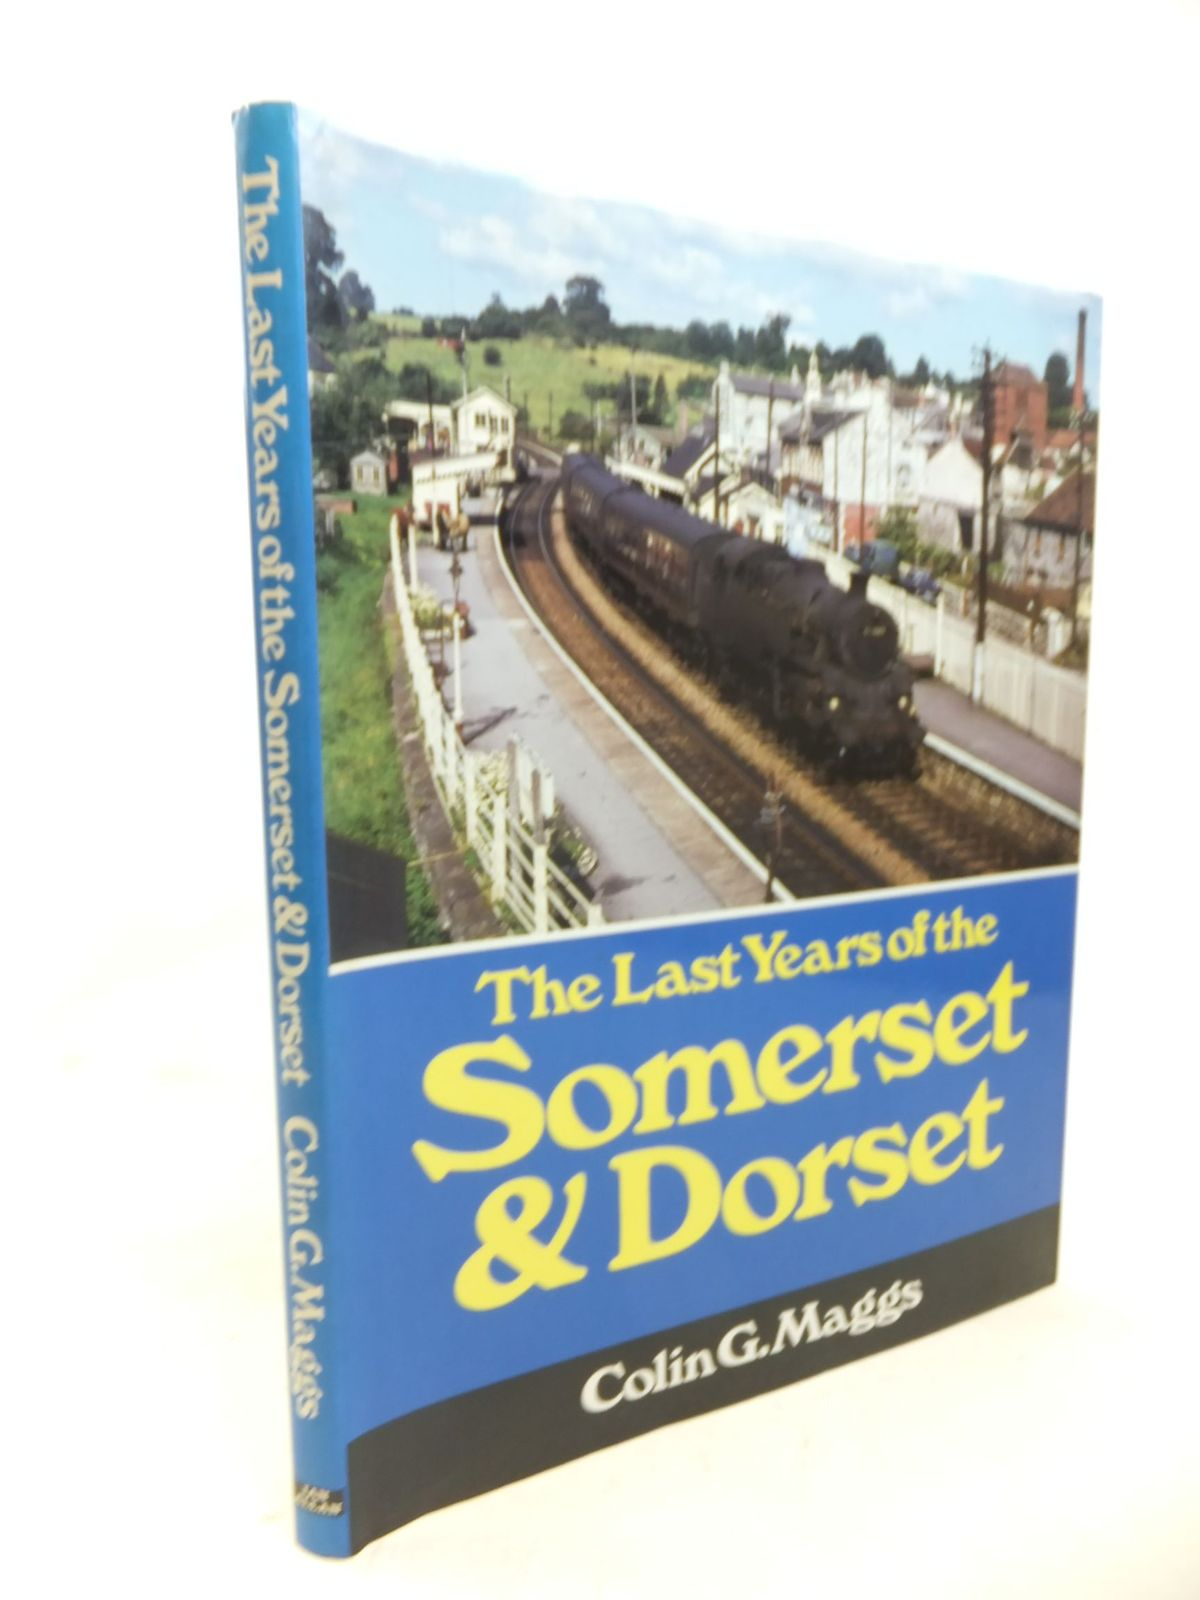 Photo of THE LAST YEARS OF THE SOMERSET & DORSET written by Maggs, Colin G. published by Ian Allan (STOCK CODE: 1713201)  for sale by Stella & Rose's Books